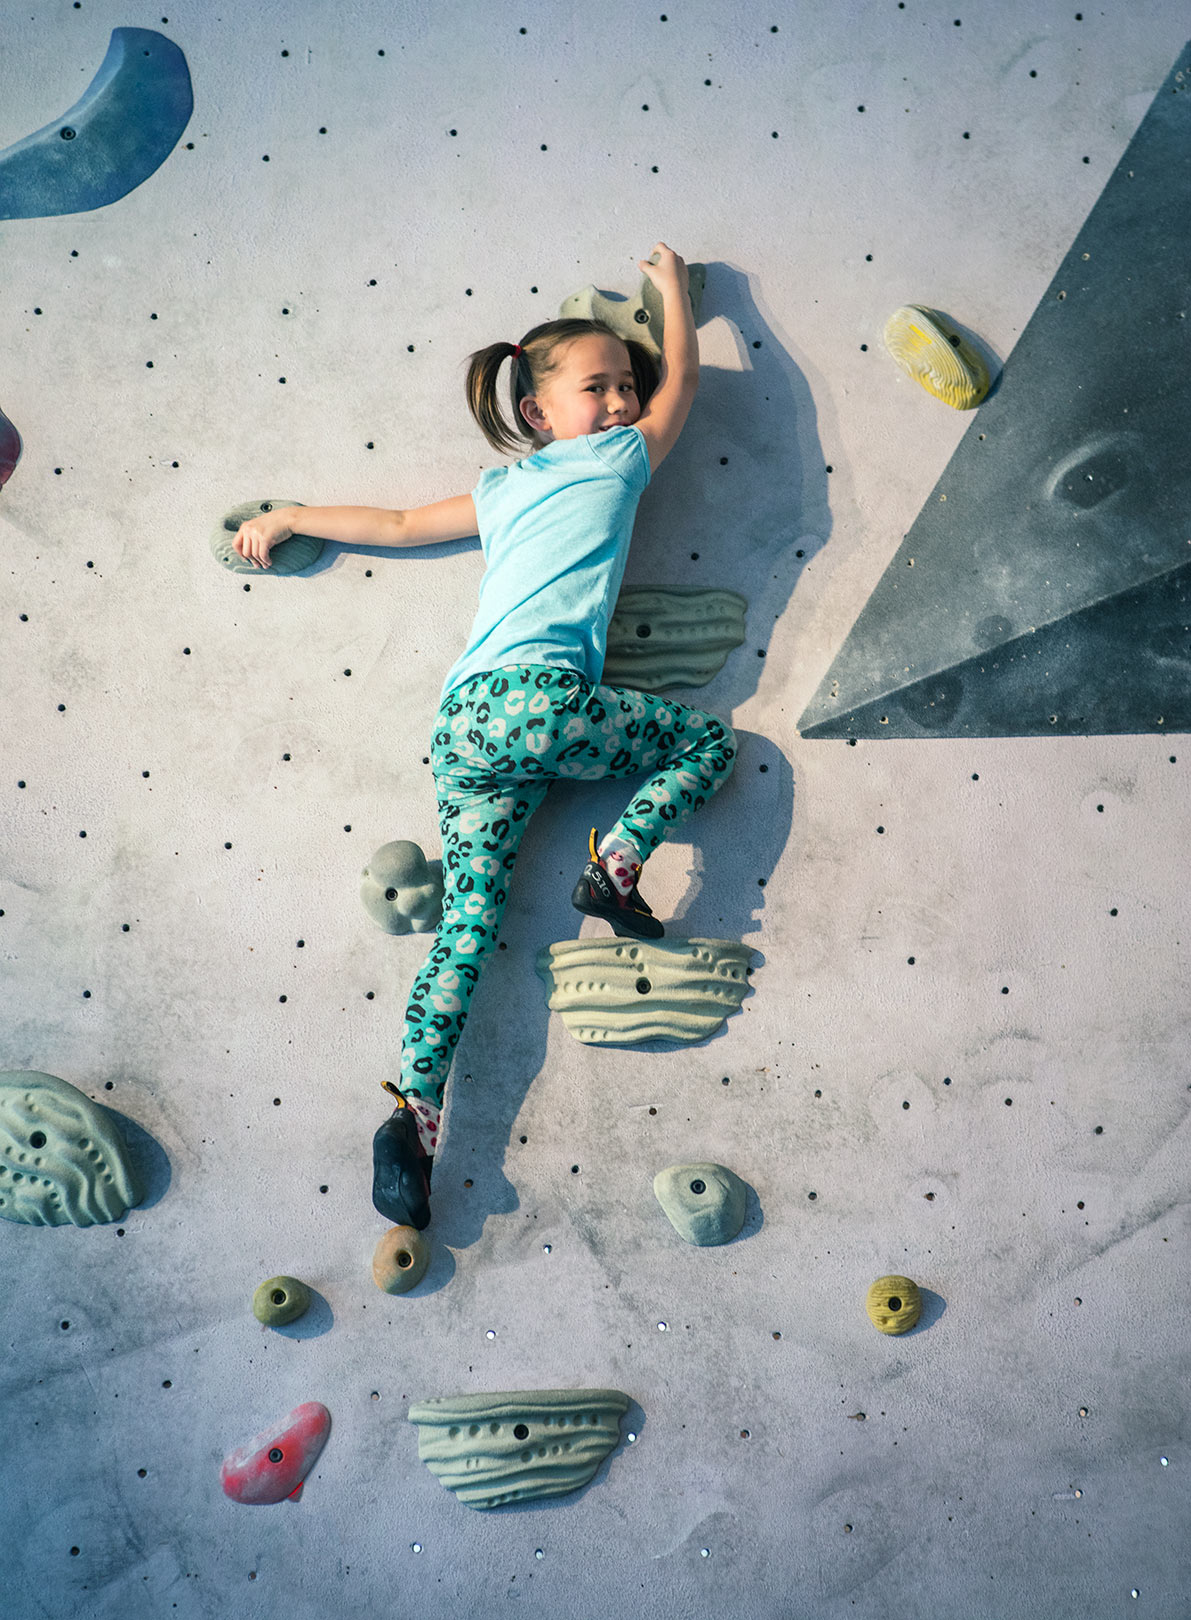 web-seattle-bouldering-325A9993_1